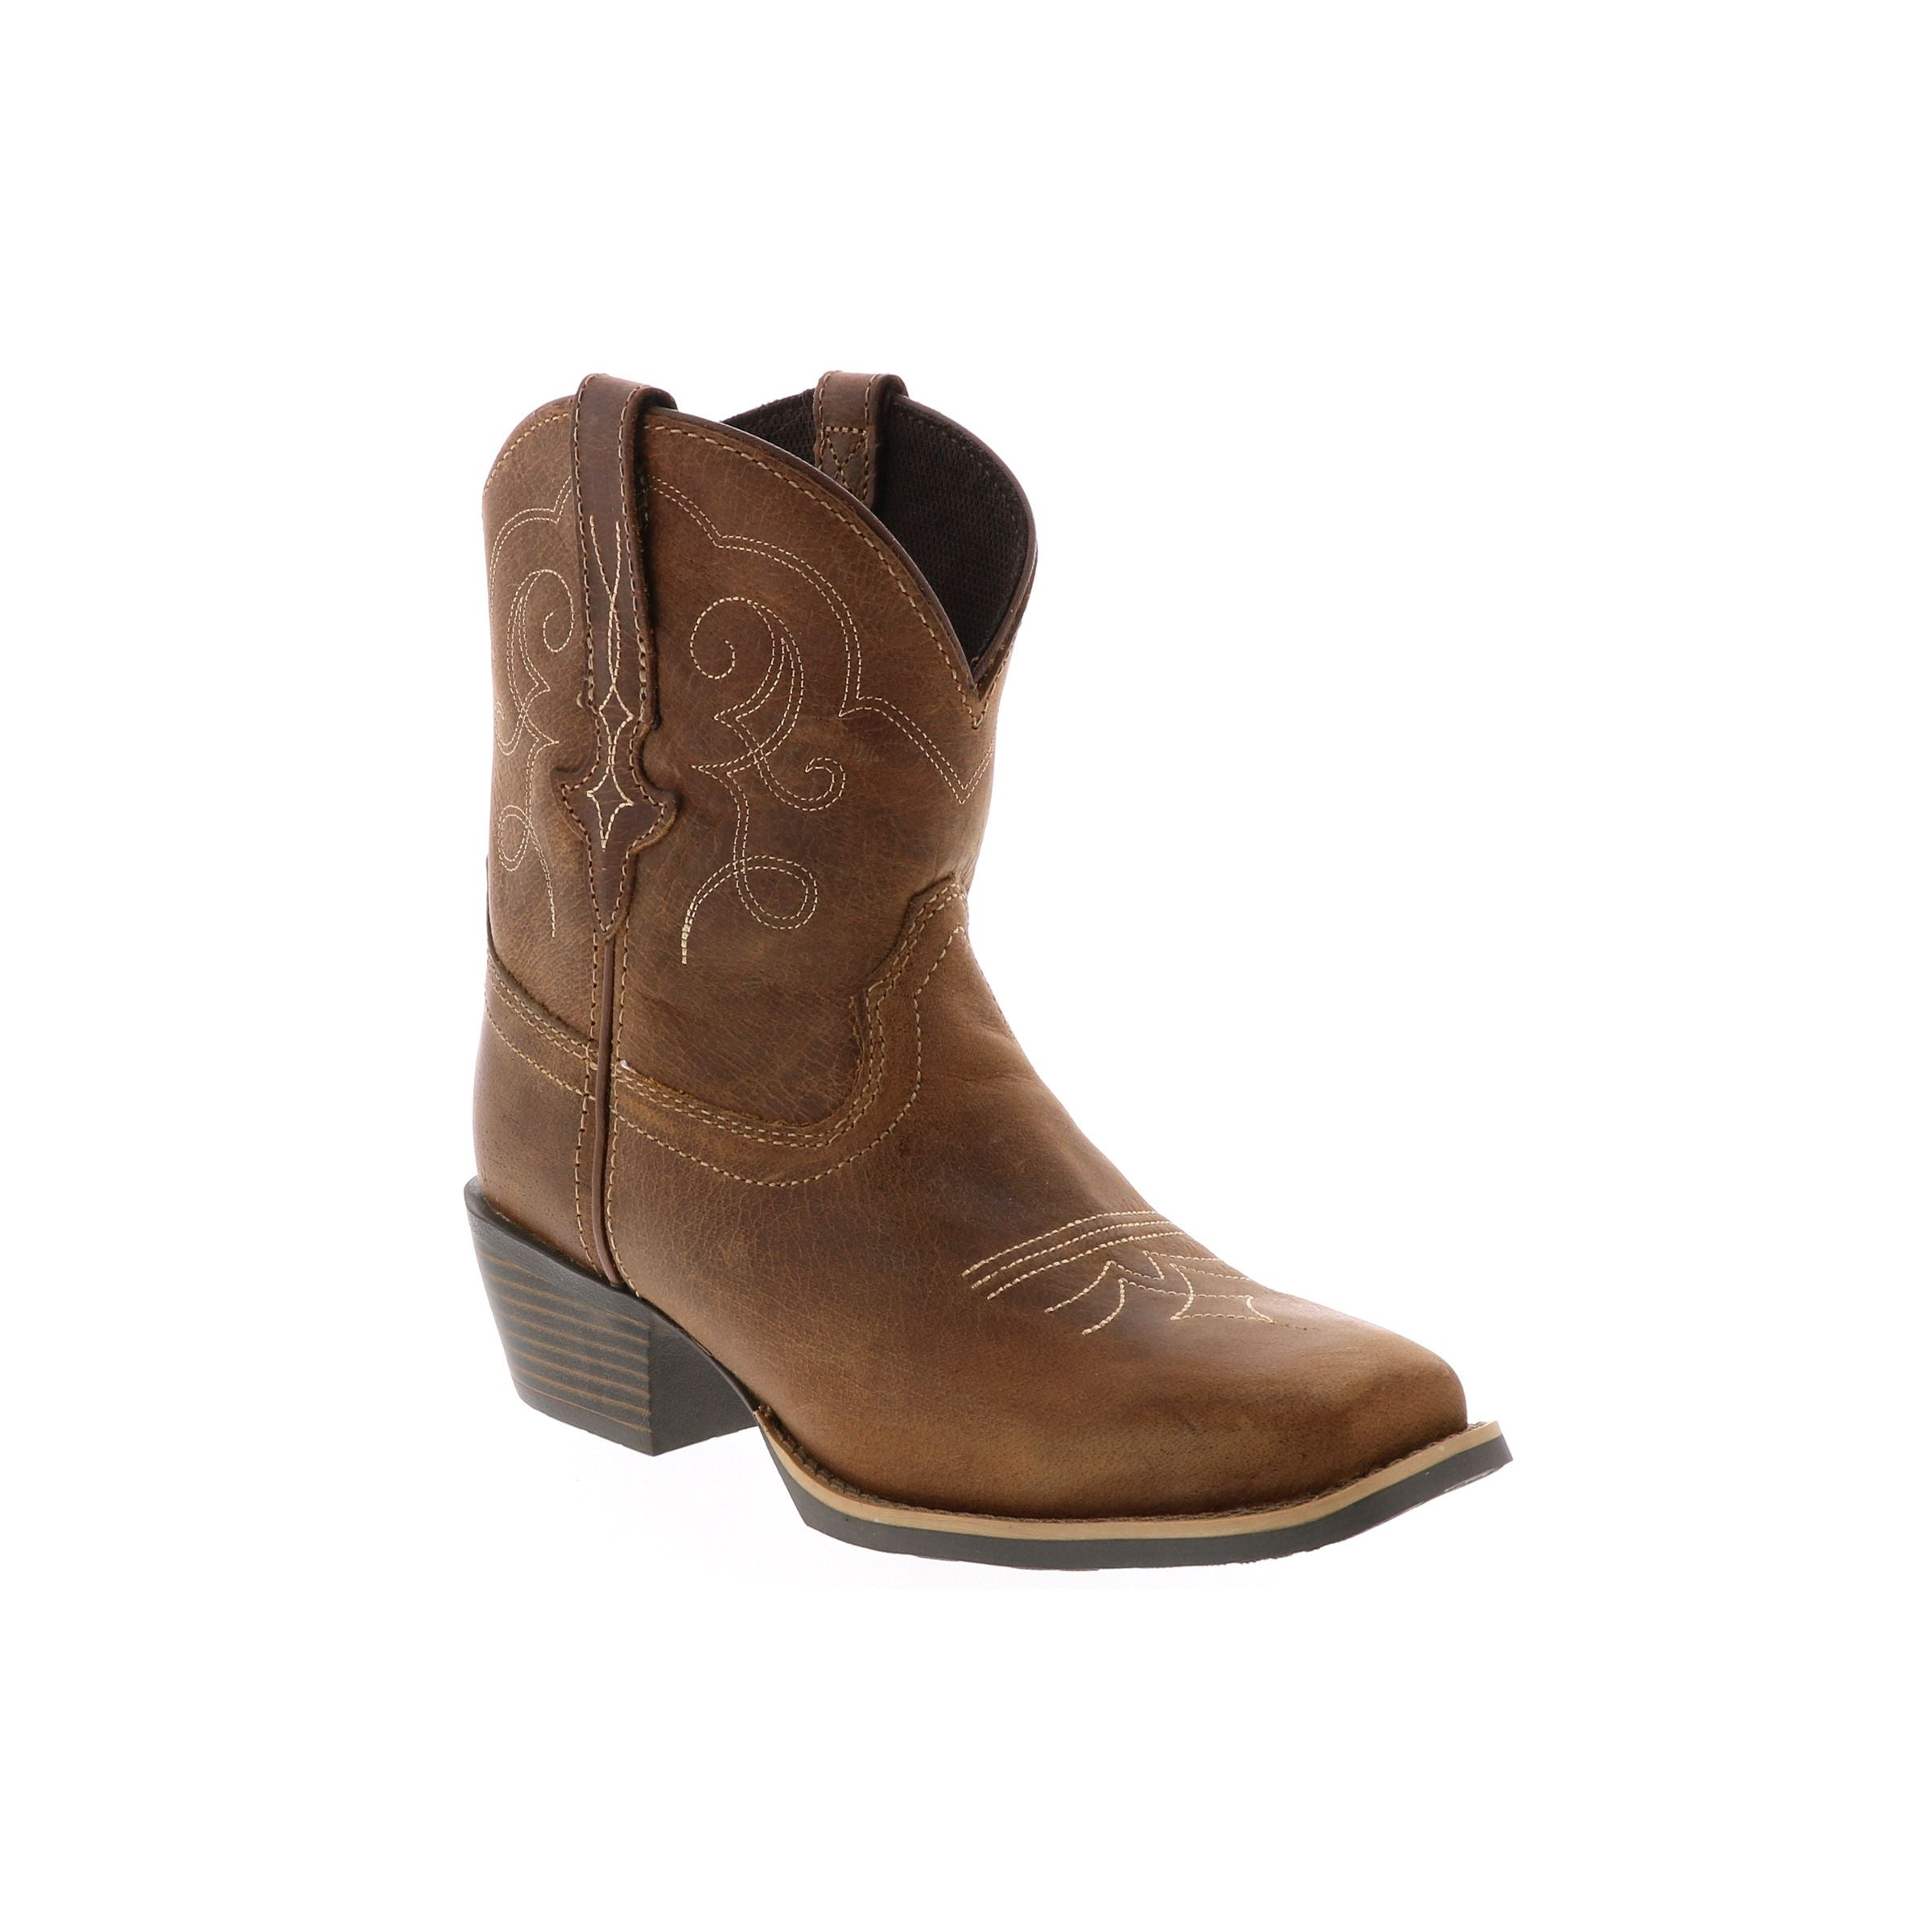 bc8b9147345 Justin Women's Chellie Tan Gypsy Boots   Centerville Western Store